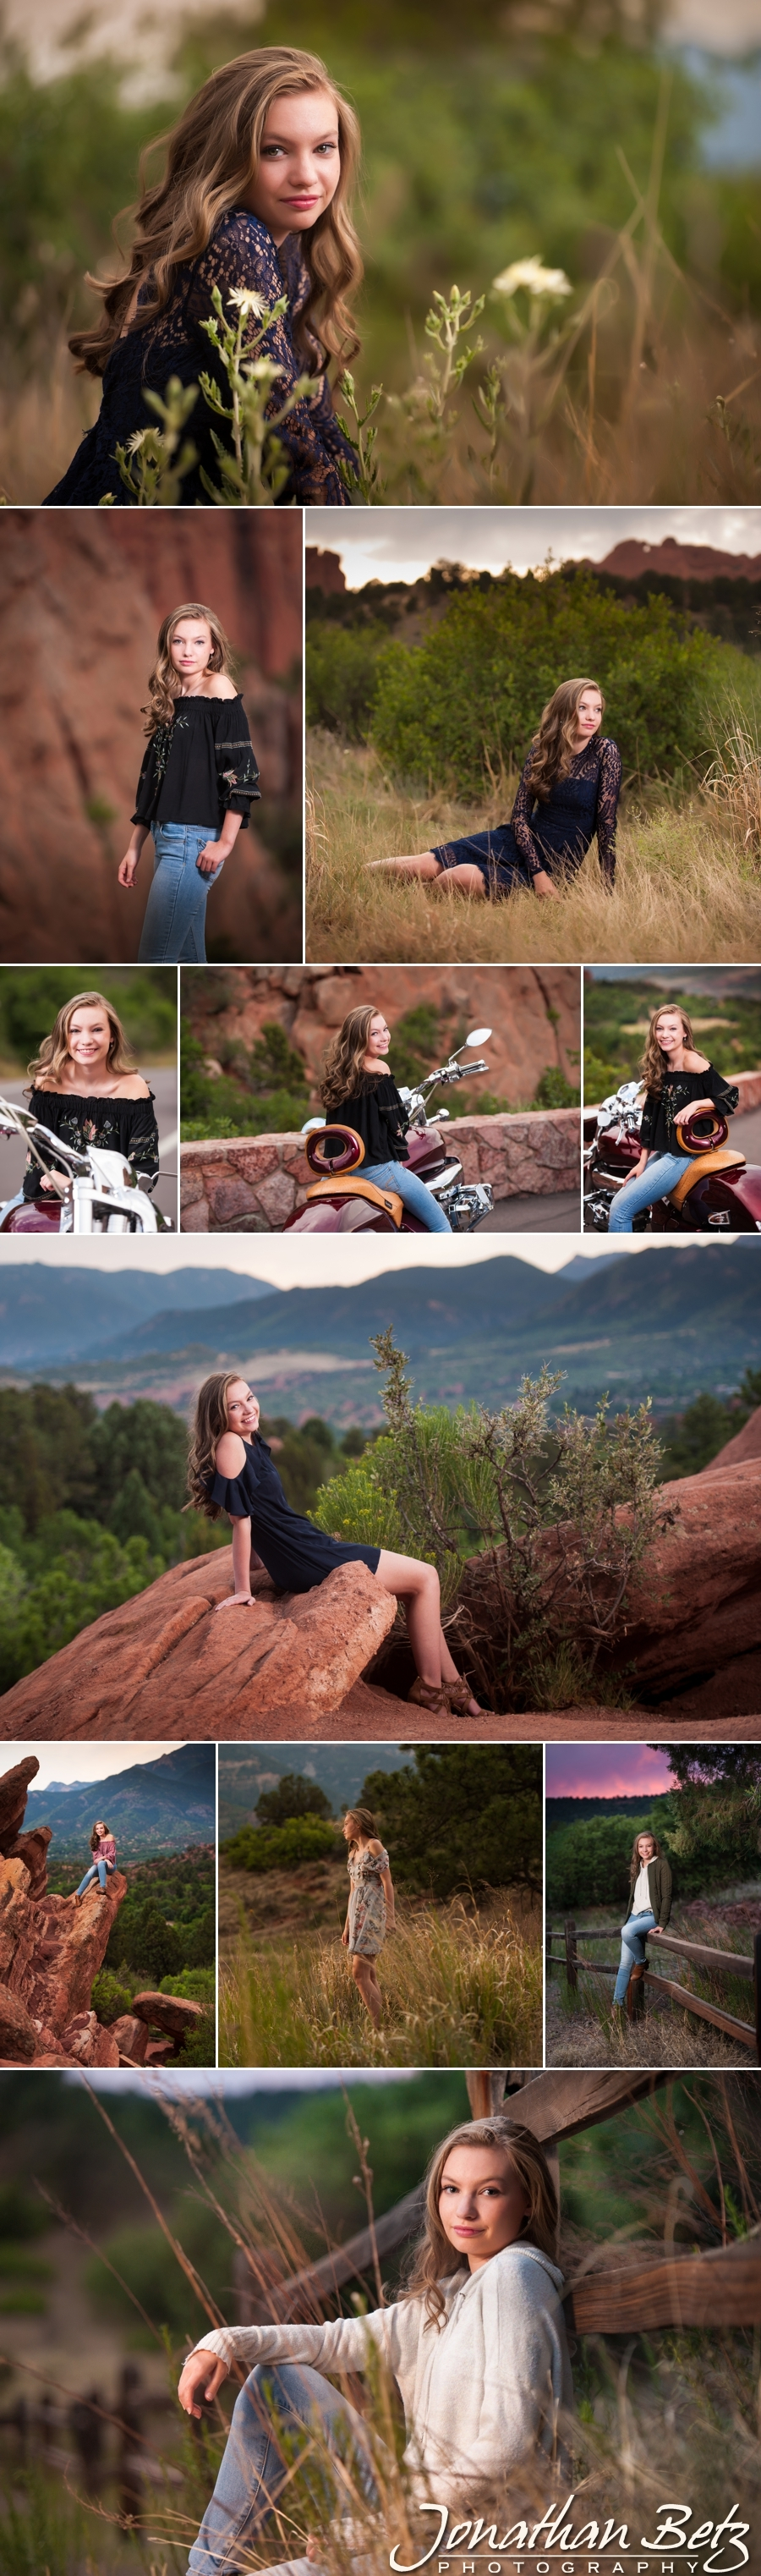 Lewis Palmer High School Senior Picture Monument Colorado Springs Photographer Jonathan Betz Photography 1